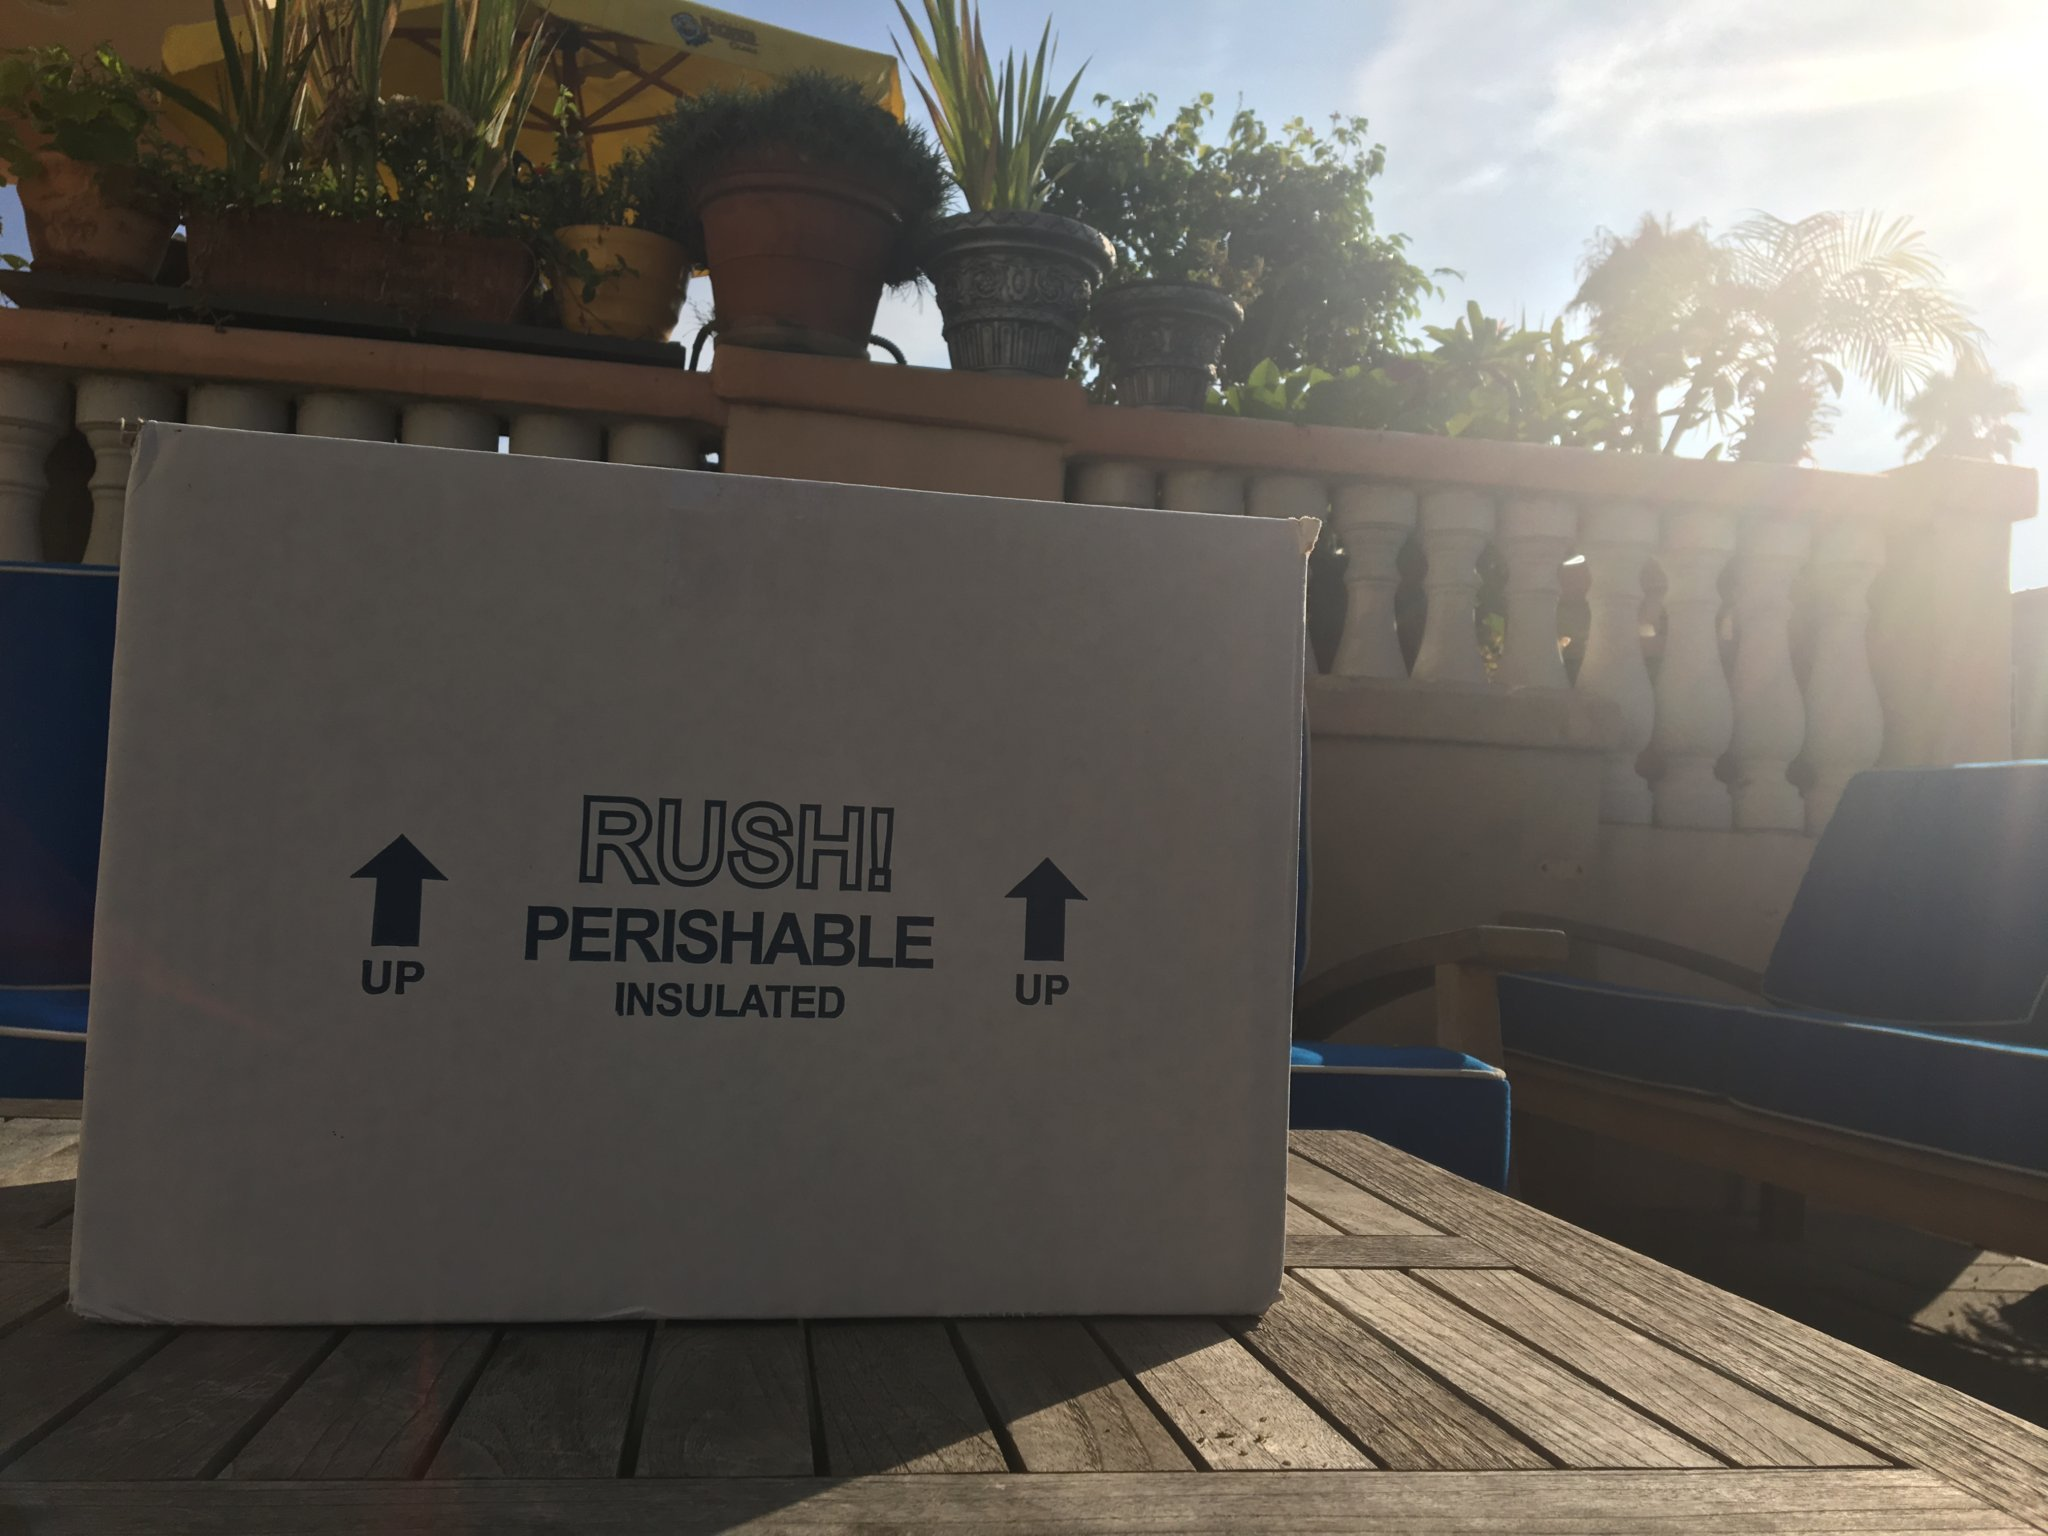 A delivery box sitting out in the sun